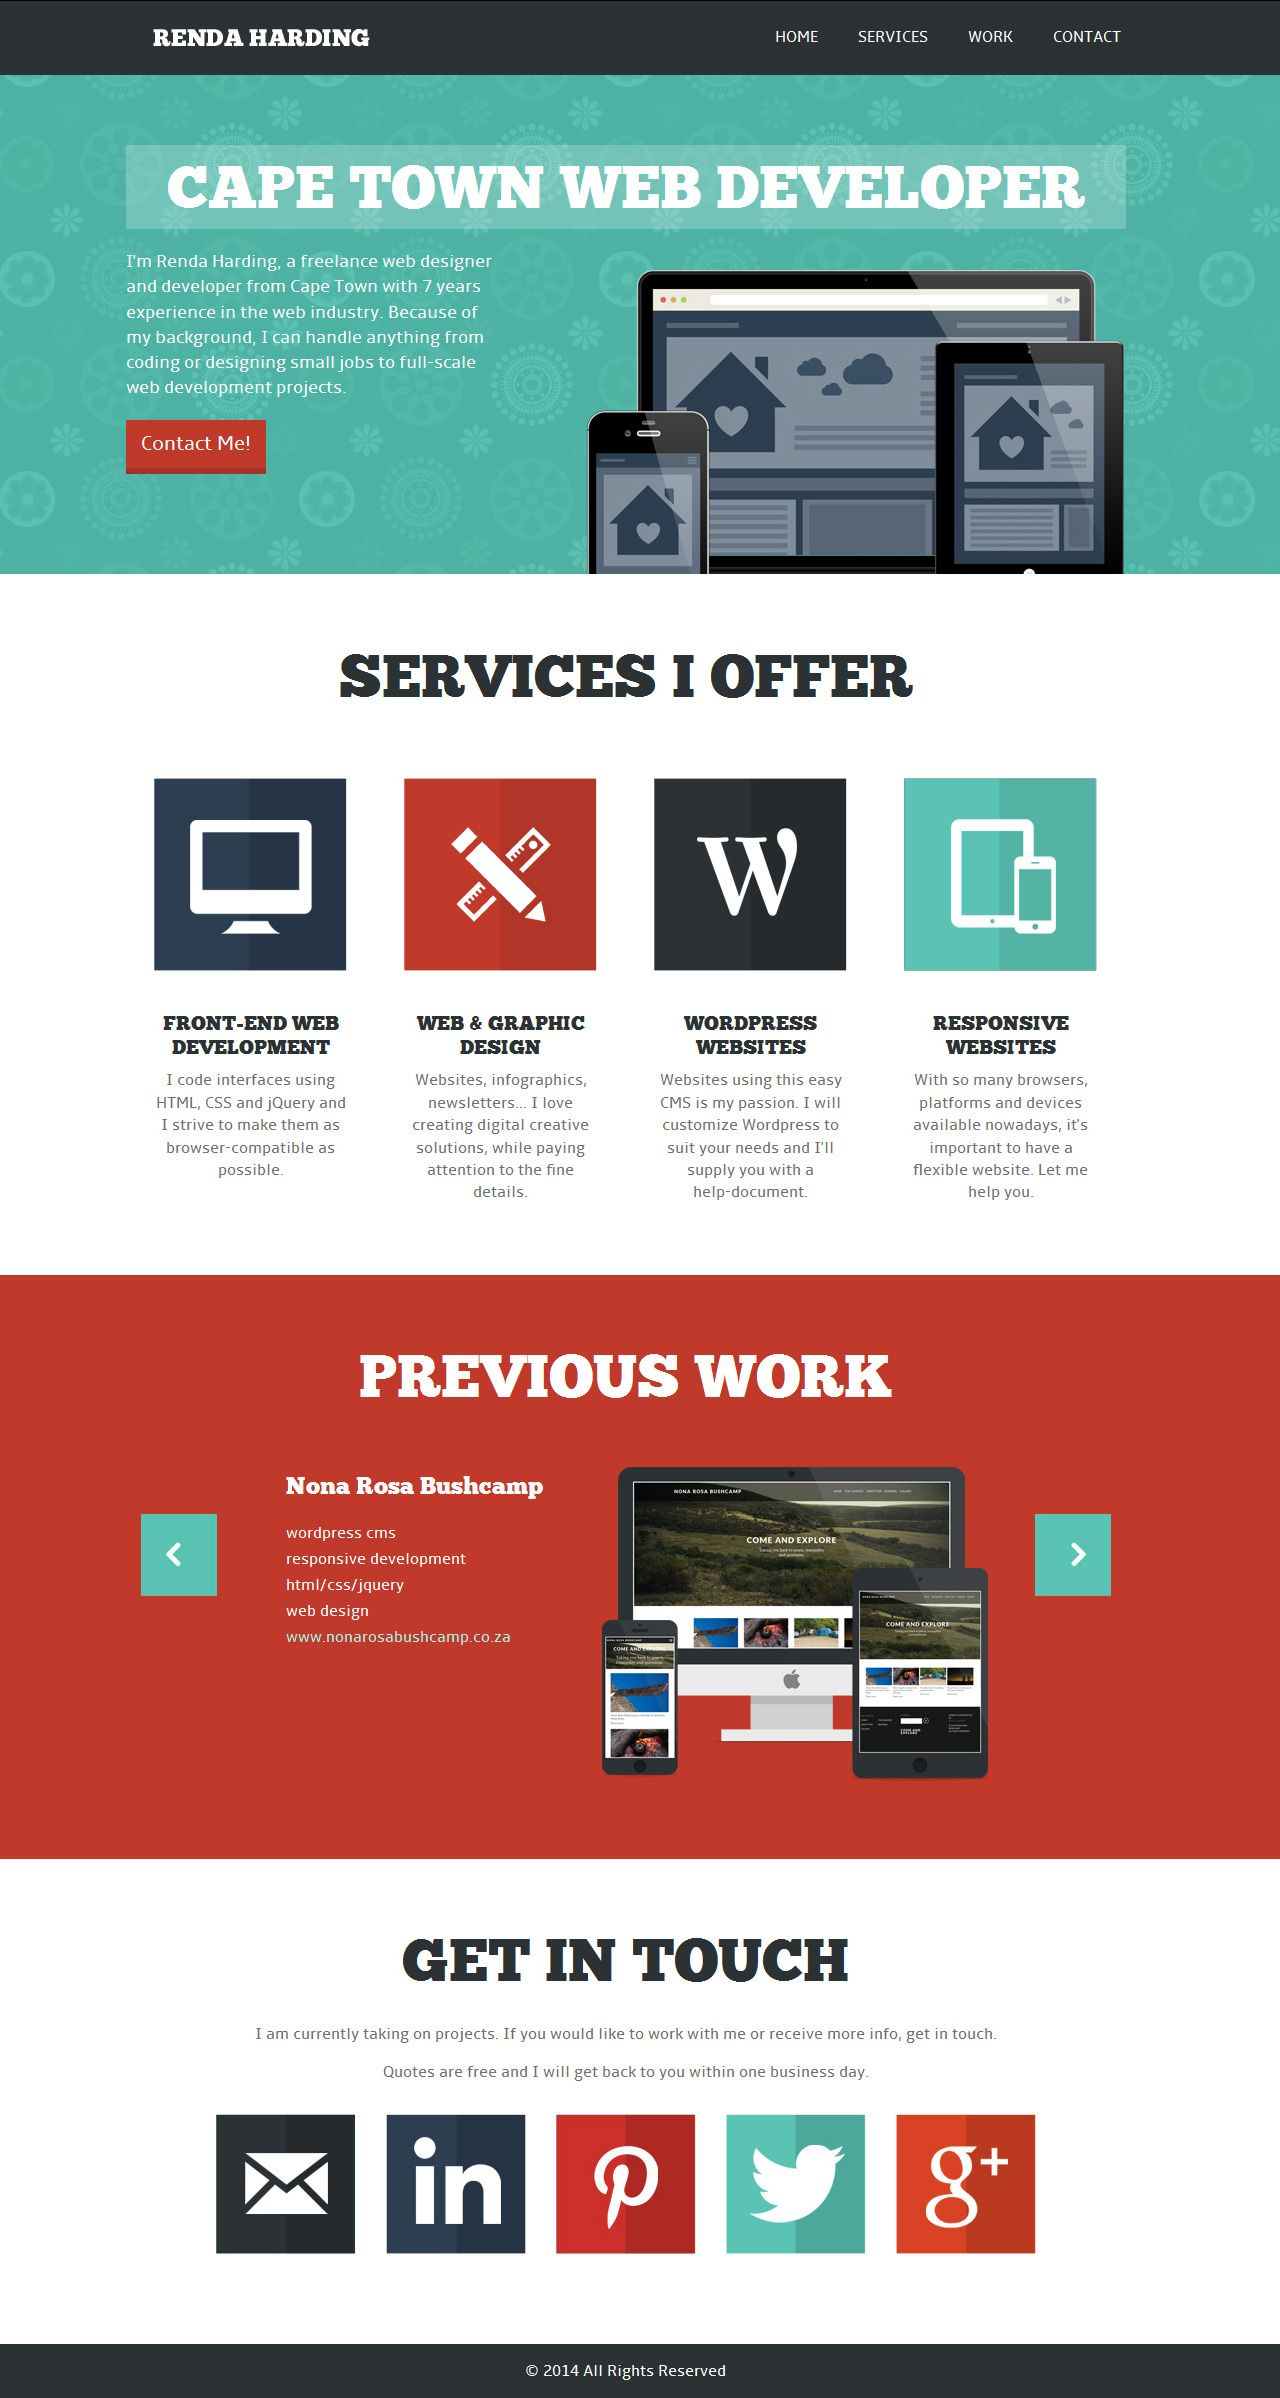 Flat Designed One Page Portfolio For Cape Town Based Web Designer Renda Harding There Are Some Obvious Alignment Is Web Design One Page Website Website Design